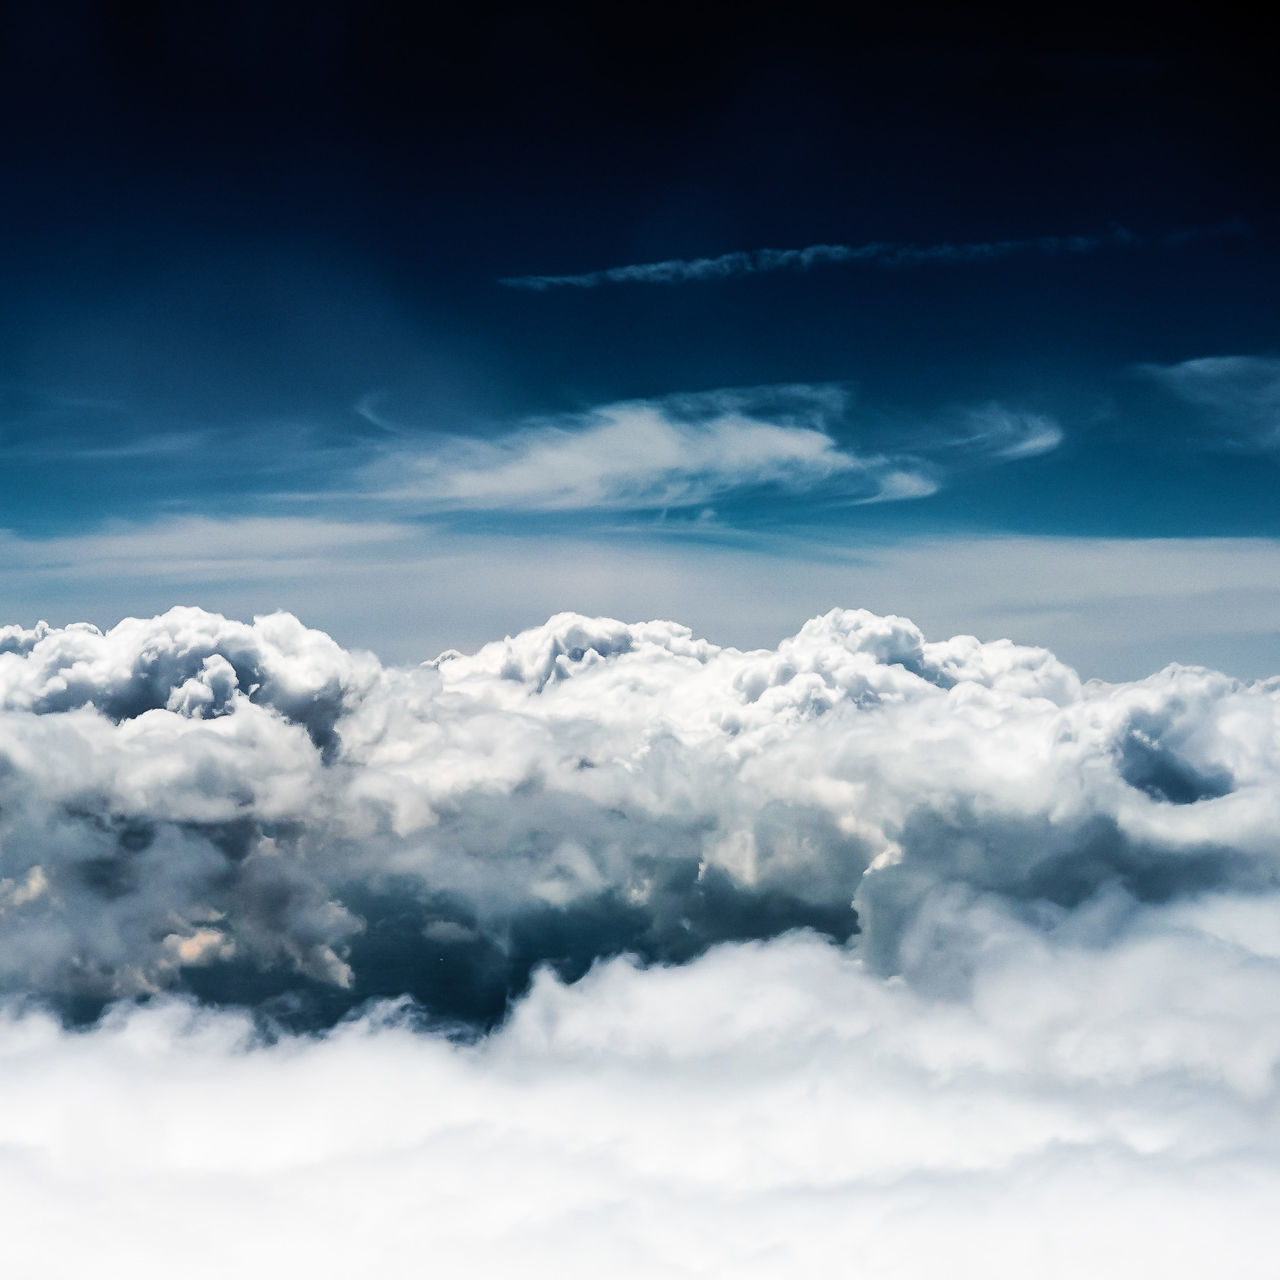 Atmospheric Mood Backgrounds Beauty In Nature Blue Cloud - Sky Cloudscape Day Dramatic Sky Dreamlike Ethereal Full Frame Heaven Majestic Nature No People Outdoors Scenics Sky Sky Only Softness The Natural World Tranquil Scene Tranquility White Color